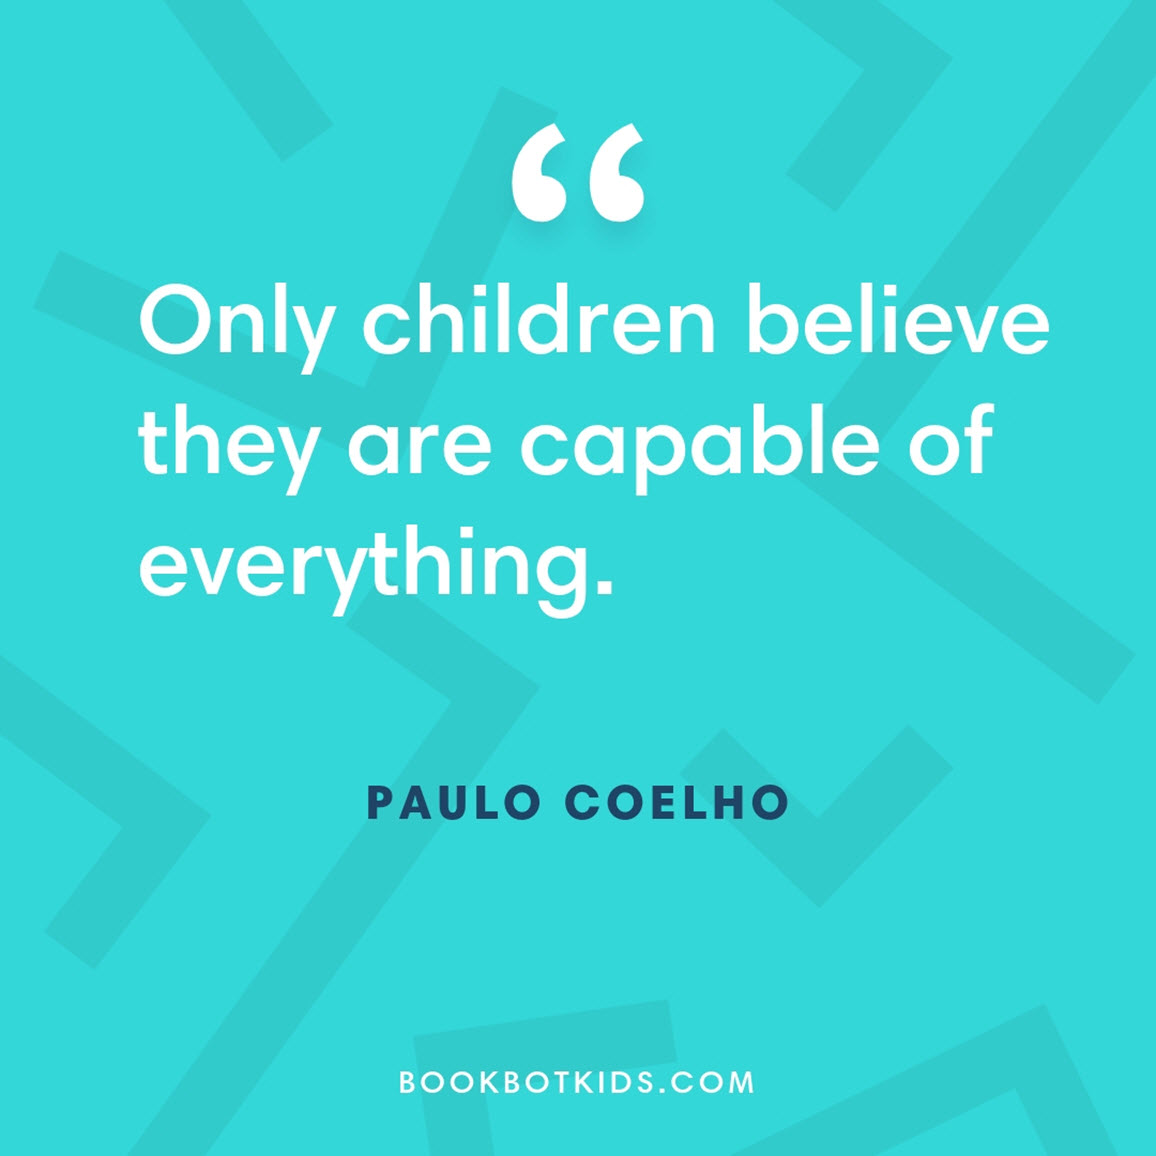 Only children believe they are capable of everything. – Paulo Coelho